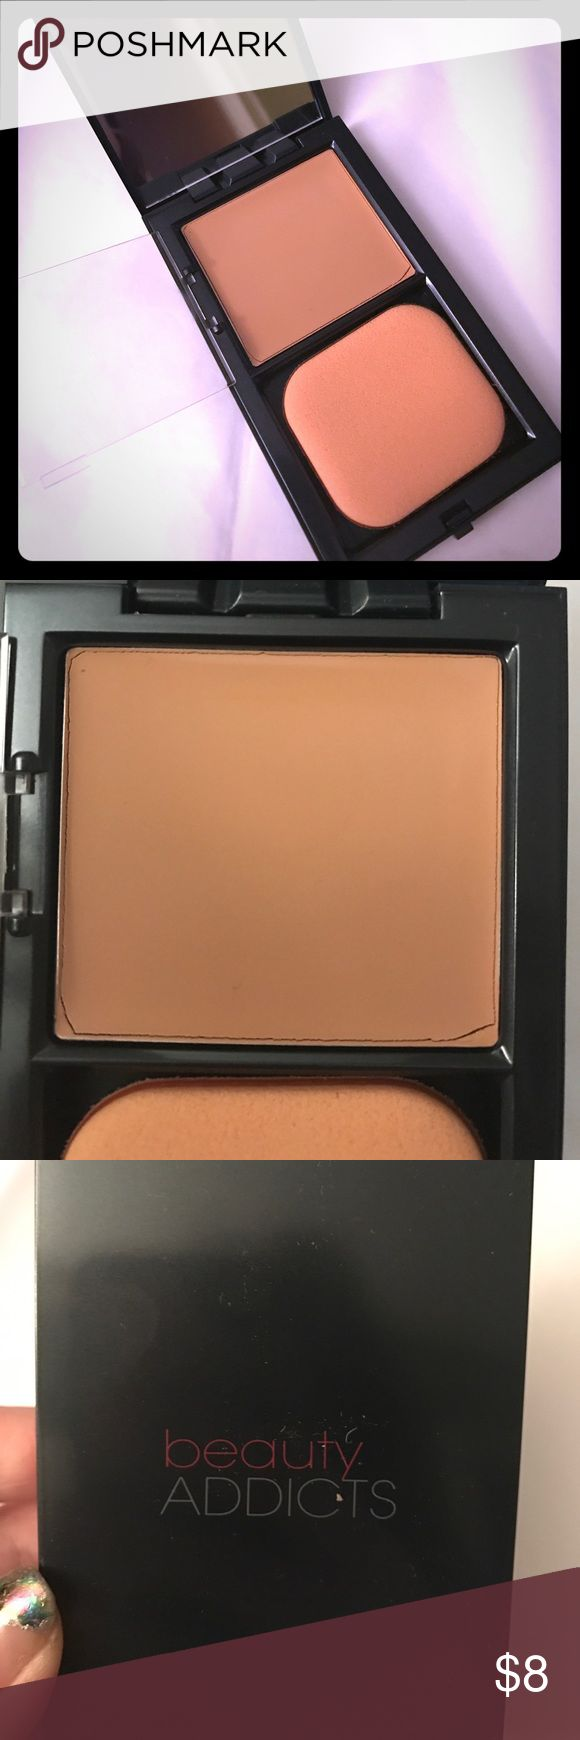 Cream to Powder Foundation Shade 05: full coverage foundation with a satin-matte finish. Contains green tea, vitamin e, dermaxyl to stimulate collagen production and smooth out skin imperfections and advanced microsphere technology to diminish fine lines and wrinkles beauty ADDICTS Makeup Foundation